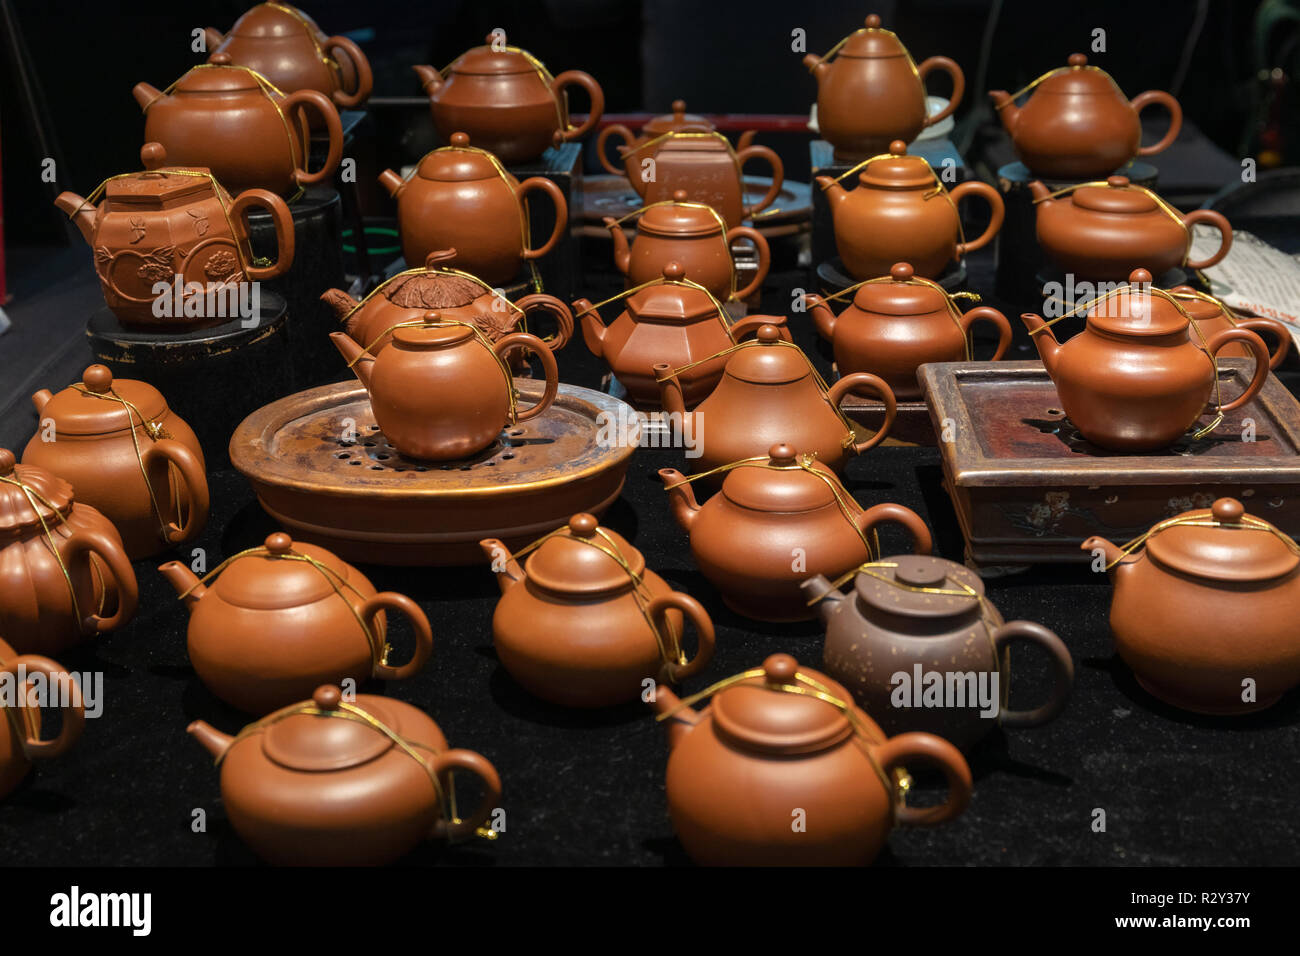 Teapots for sale at the Jianguo Holiday Jade Market in Taipei which is open every weekend, sellingjade as well as other handicraft and jewelry - Stock Image